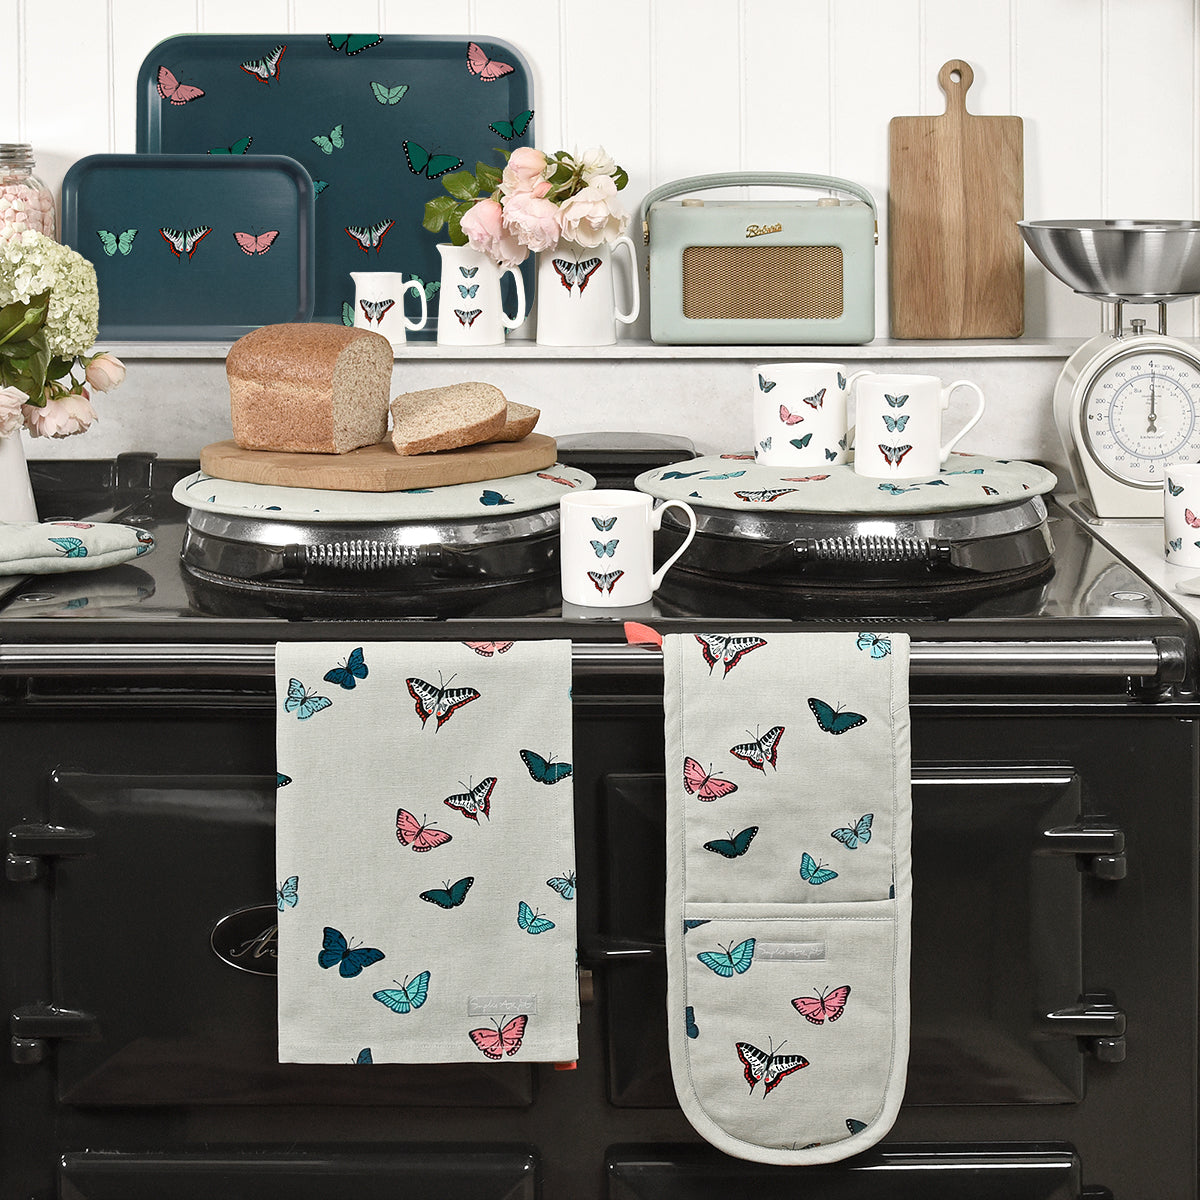 Colourful butterflies sit on this Sophie Allport tea towel with a soft neutral background.